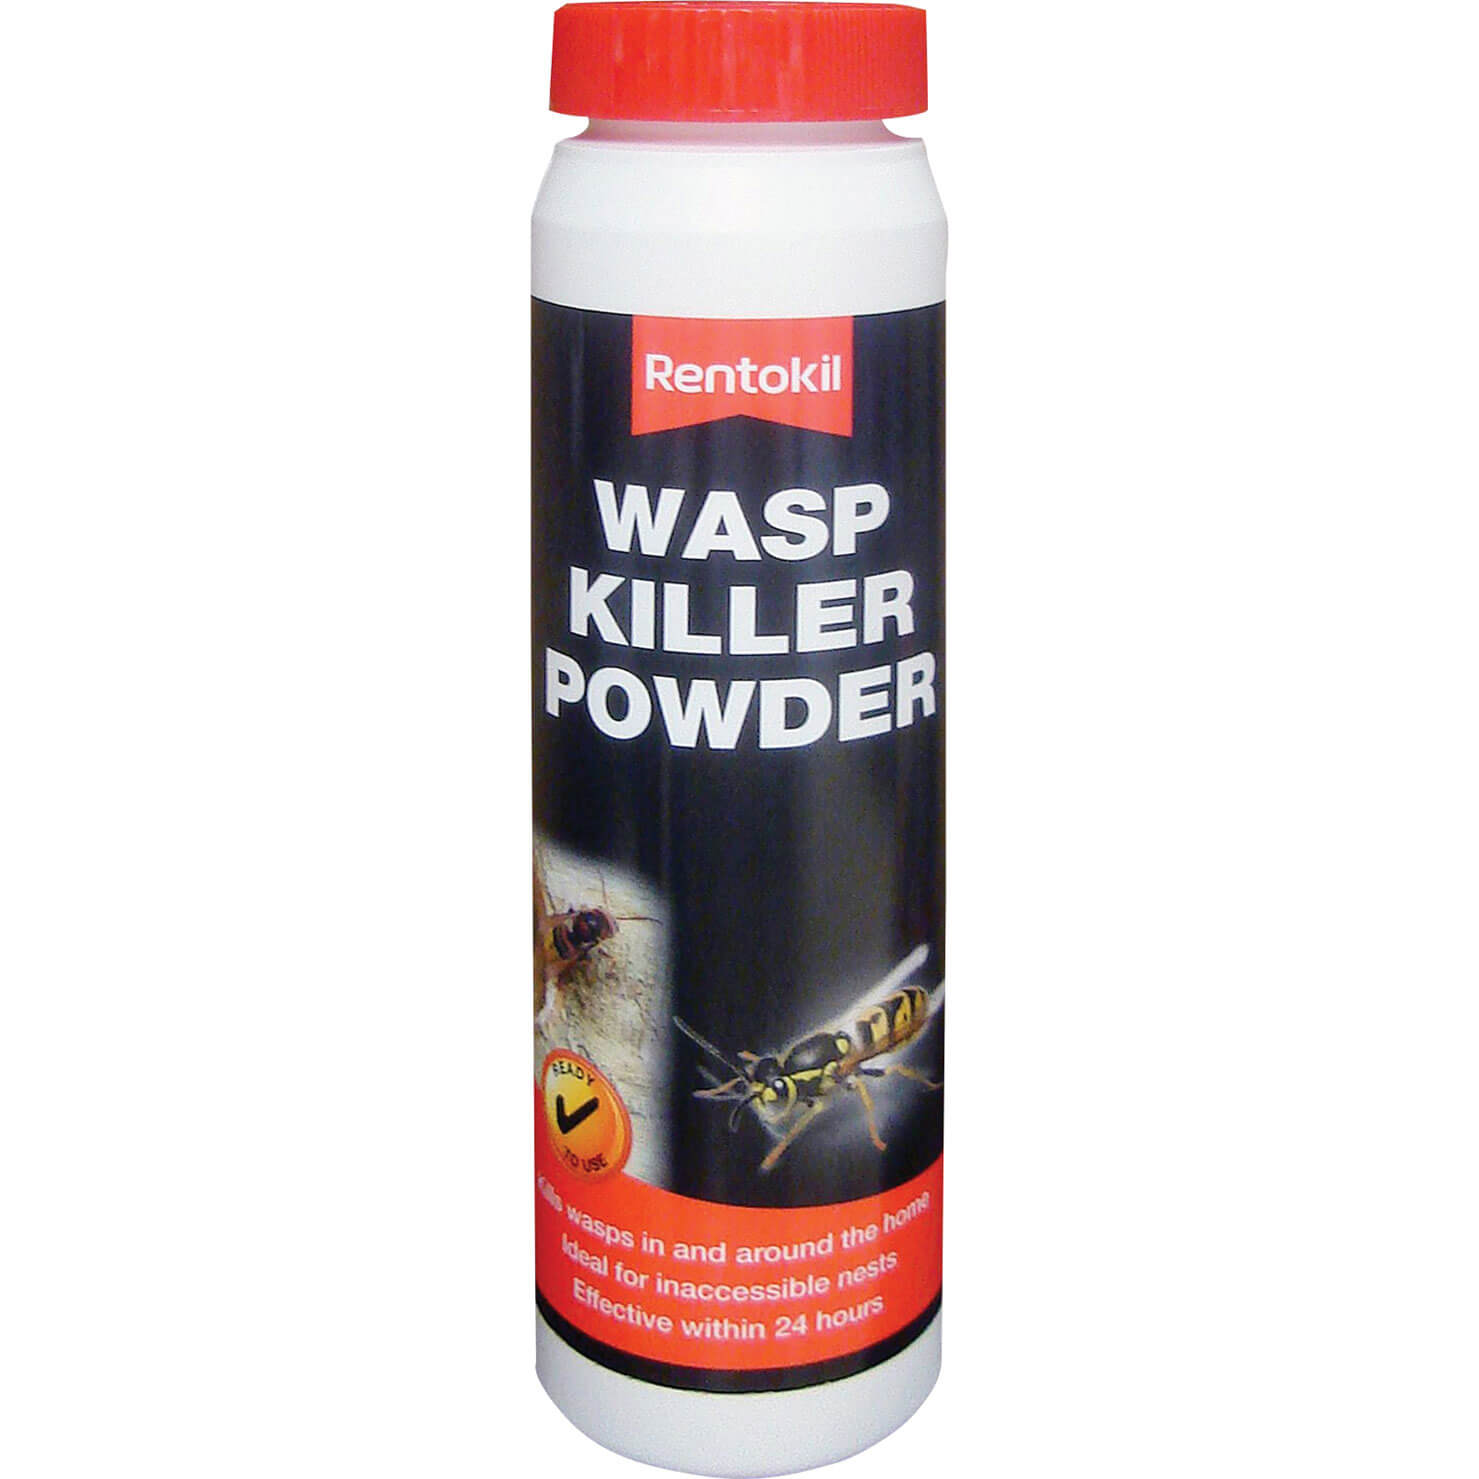 Image of Rentokil Wasp Killer Powder 150g